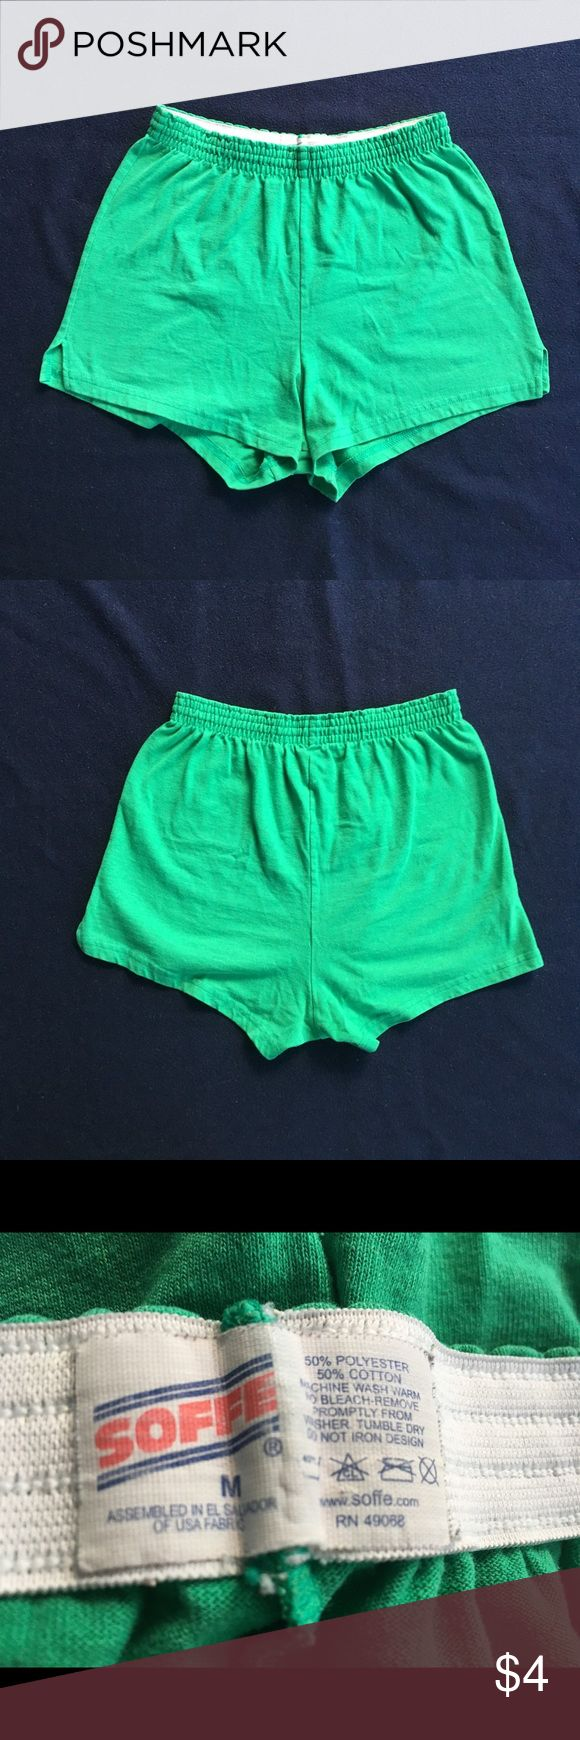 Kelly green Soffe shorts Super soft and comfy shorts in a fun bright green color. Great for gym, pool or just lounging around. Fits slightly small but fabric has a lot of stretch. Add this to a bundle of 2 or more and get it free!            p Soffe Shorts